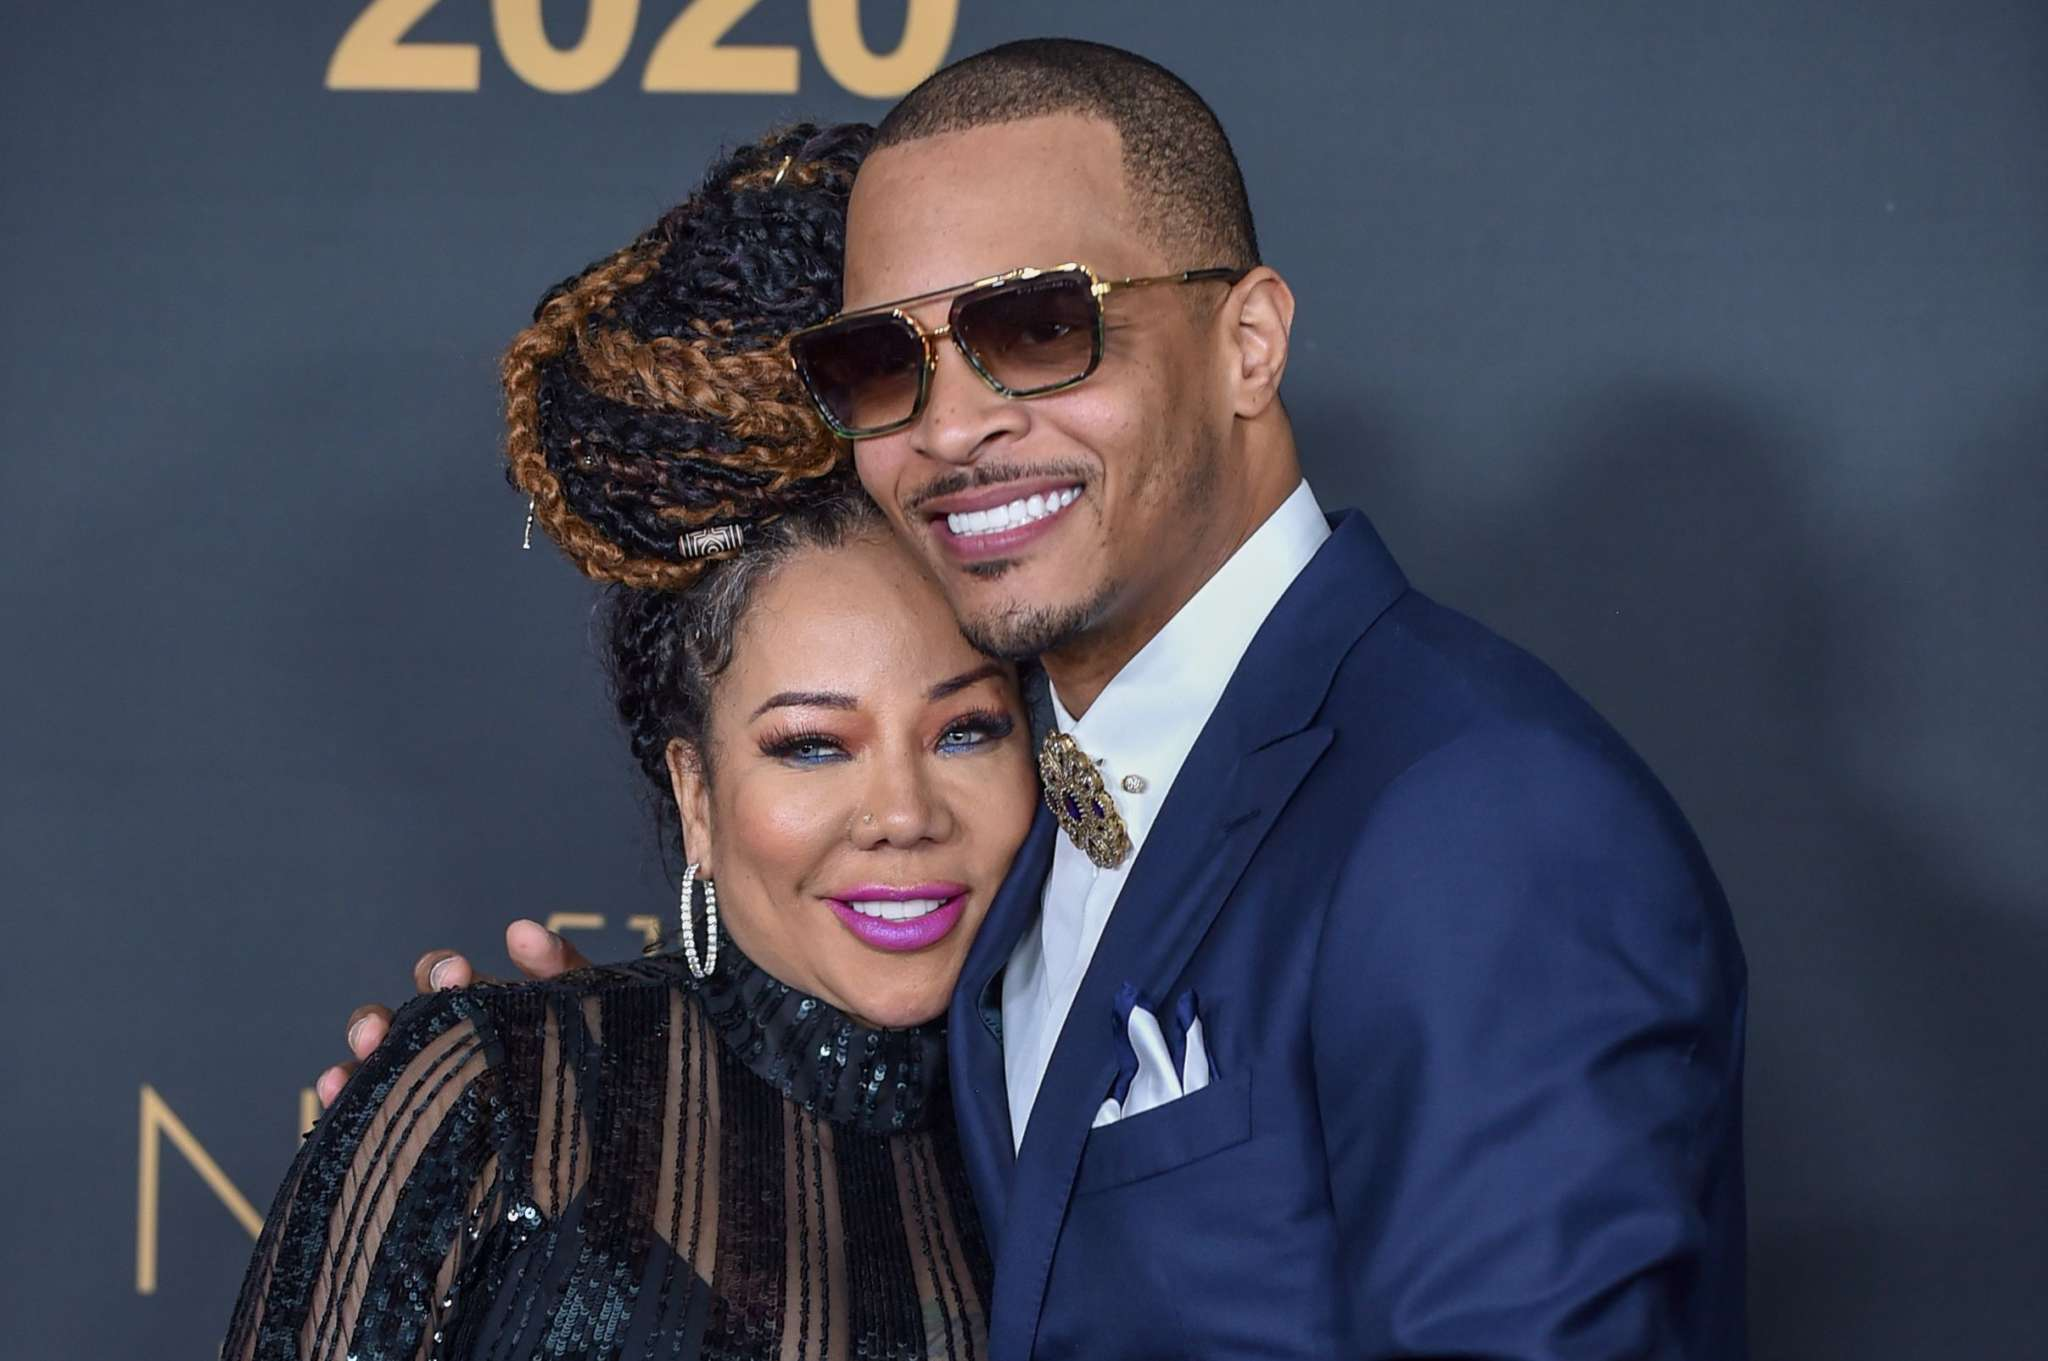 tiny-harris-celebrates-big-daddy-t-i-on-fathers-day-thanks-him-for-their-blended-family